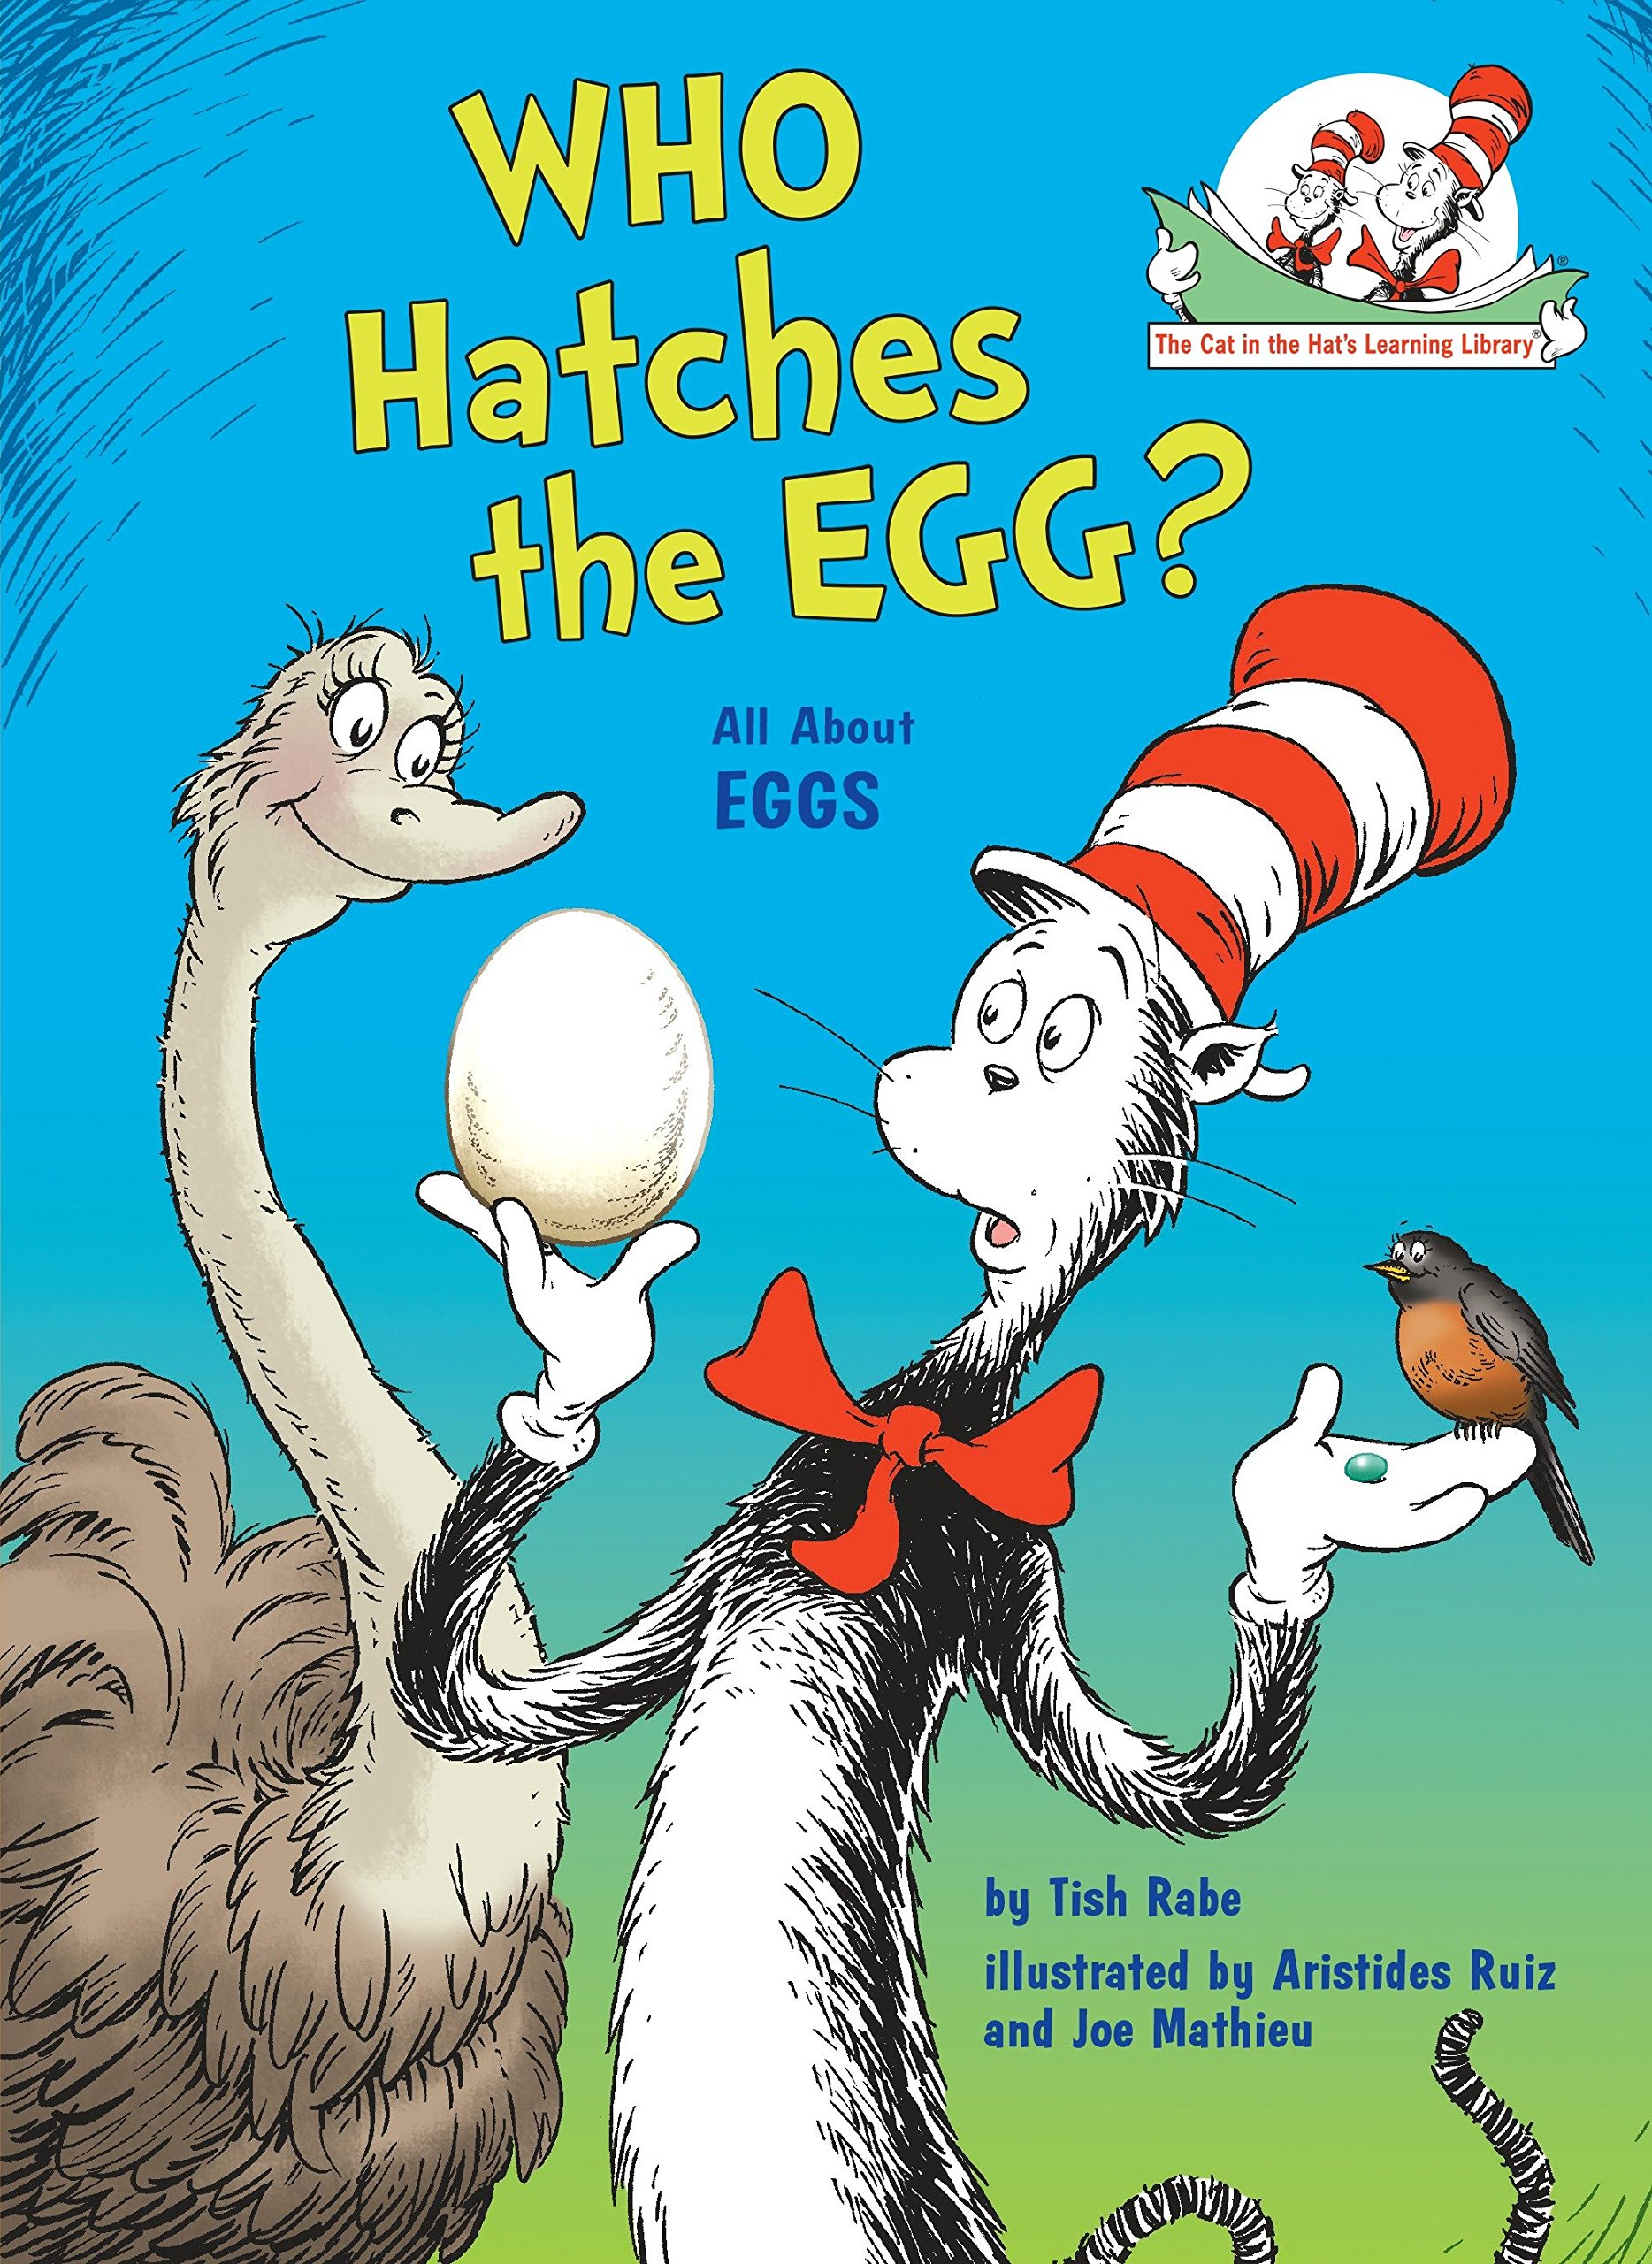 d6918a23 Amazon.com: Who Hatches the Egg?: All About Eggs (Cat in the Hat's Learning  Library) (9780449814987): Tish Rabe, Aristides Ruiz, Joe Mathieu: Books